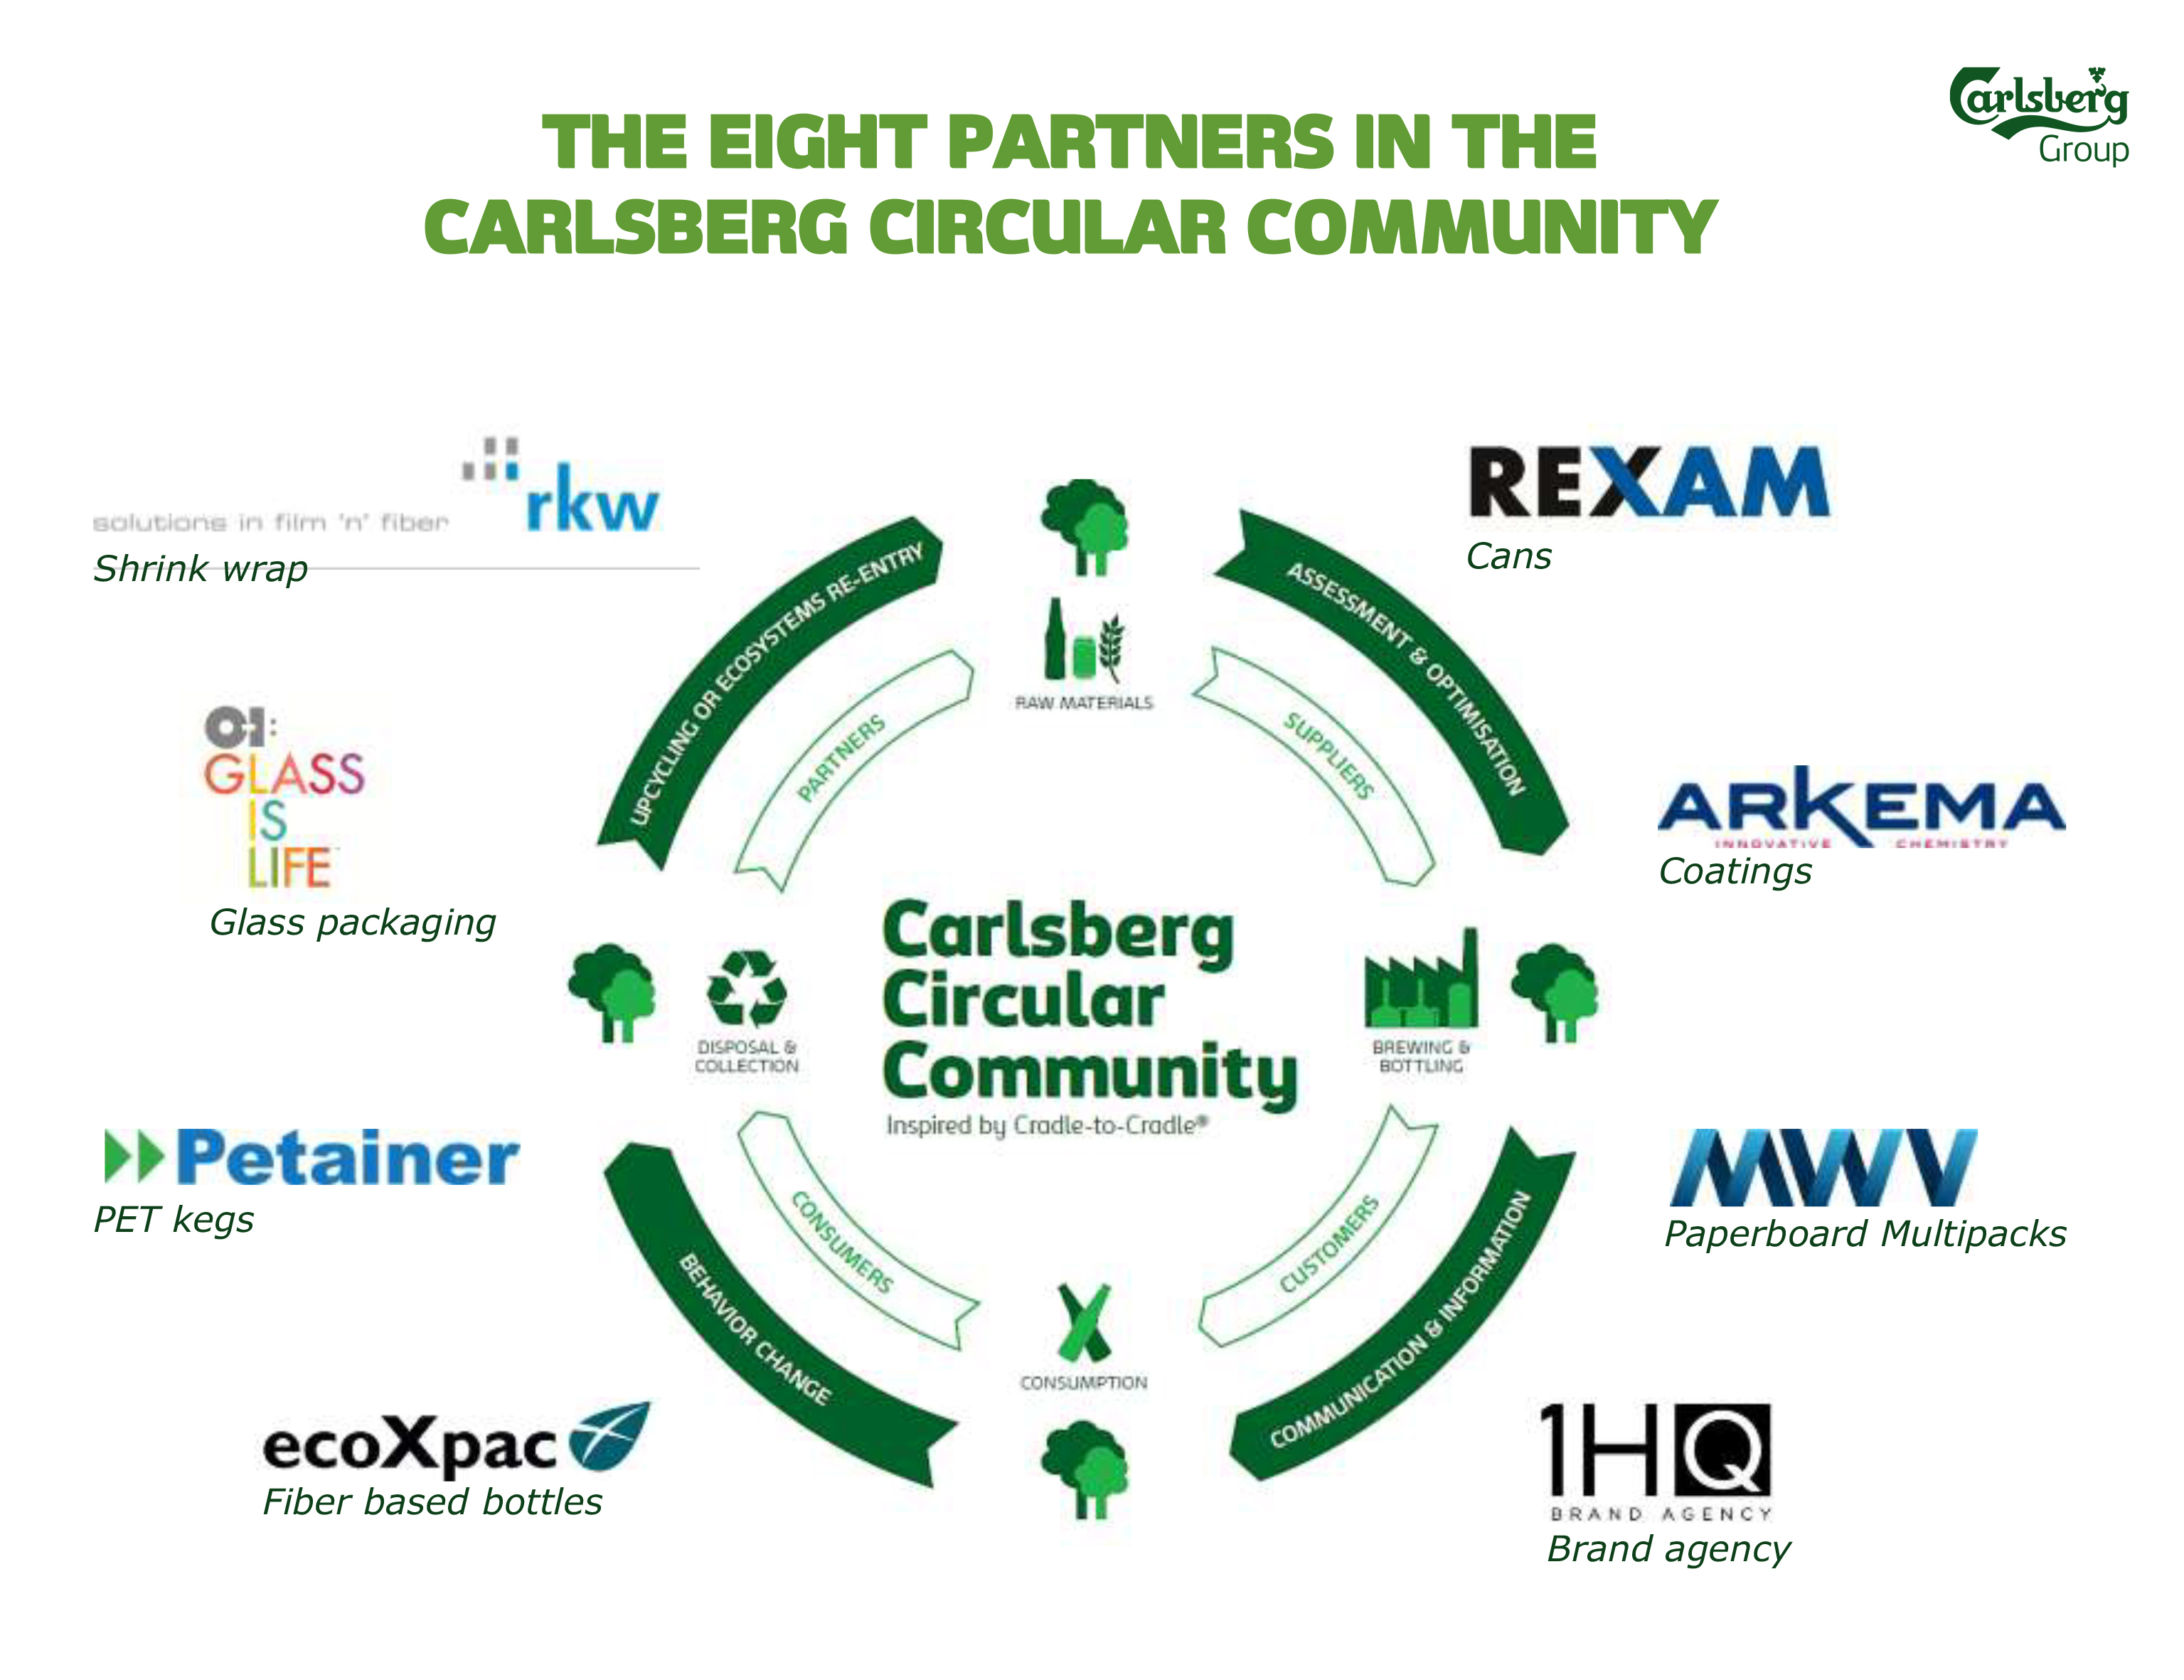 The eight partners in the Carlsberg Circular Community